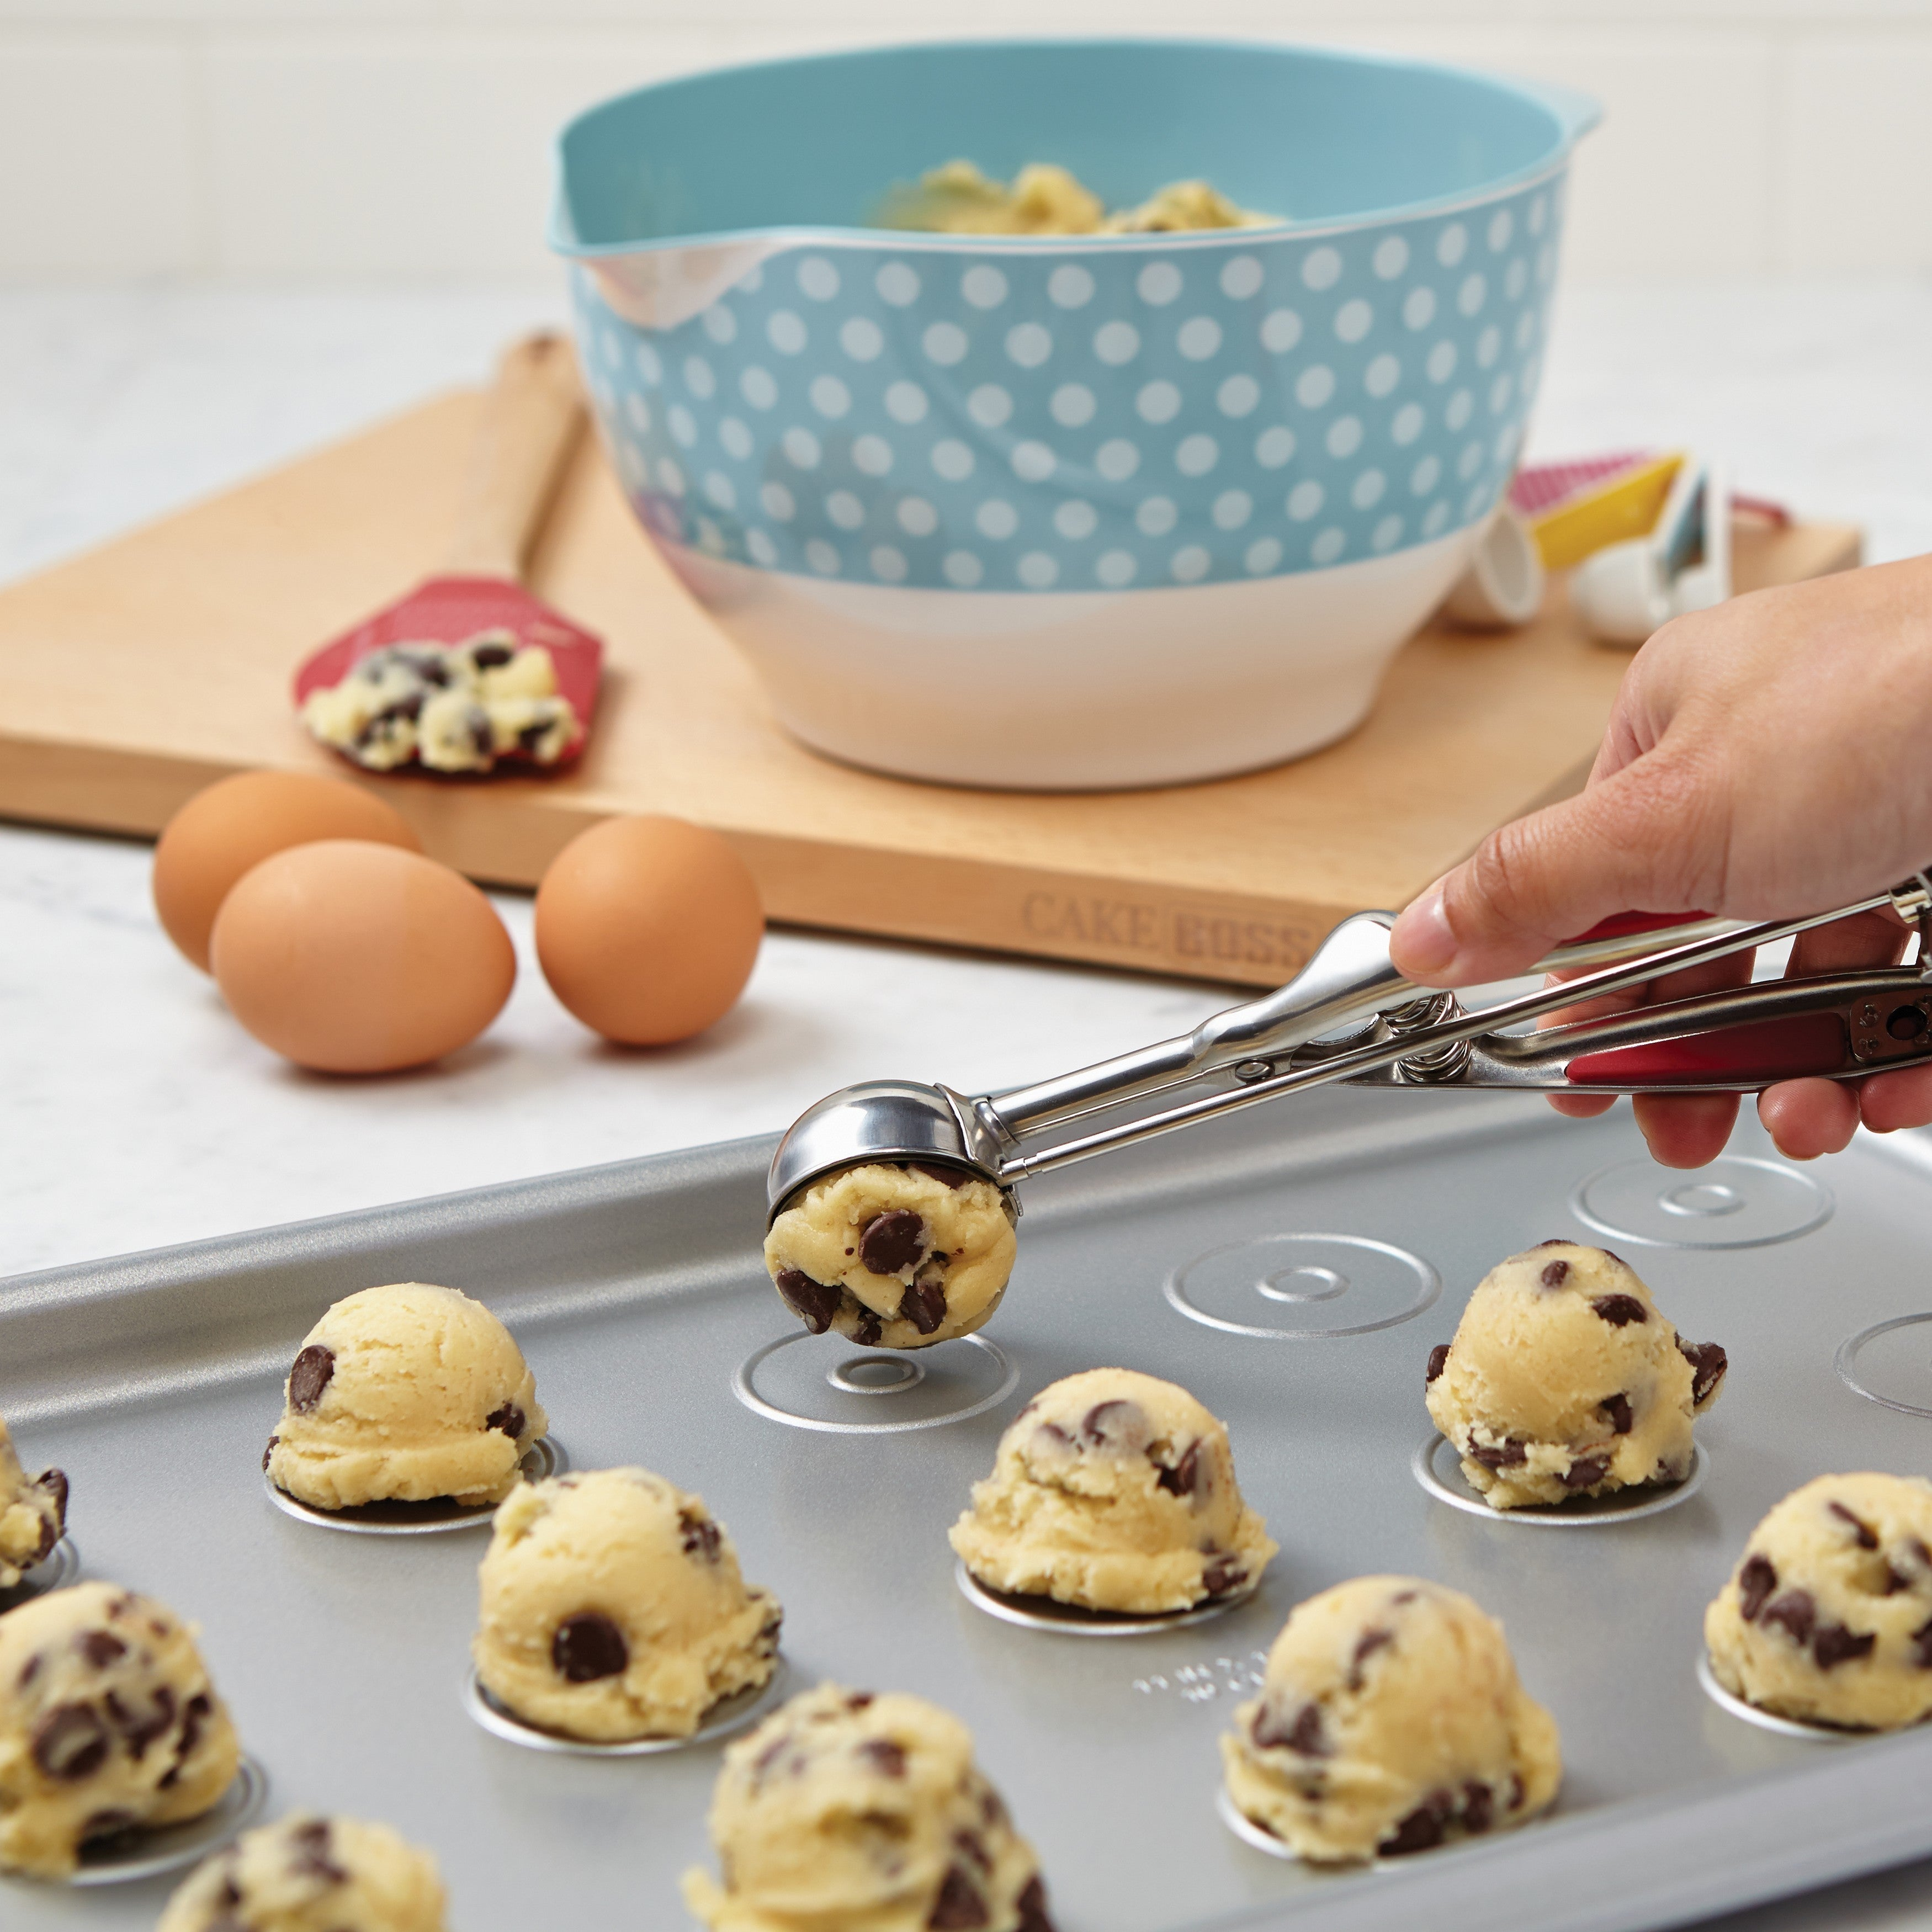 Cake Boss Stainless Steel (Silver) Tools and Gadgets 2-Ta...